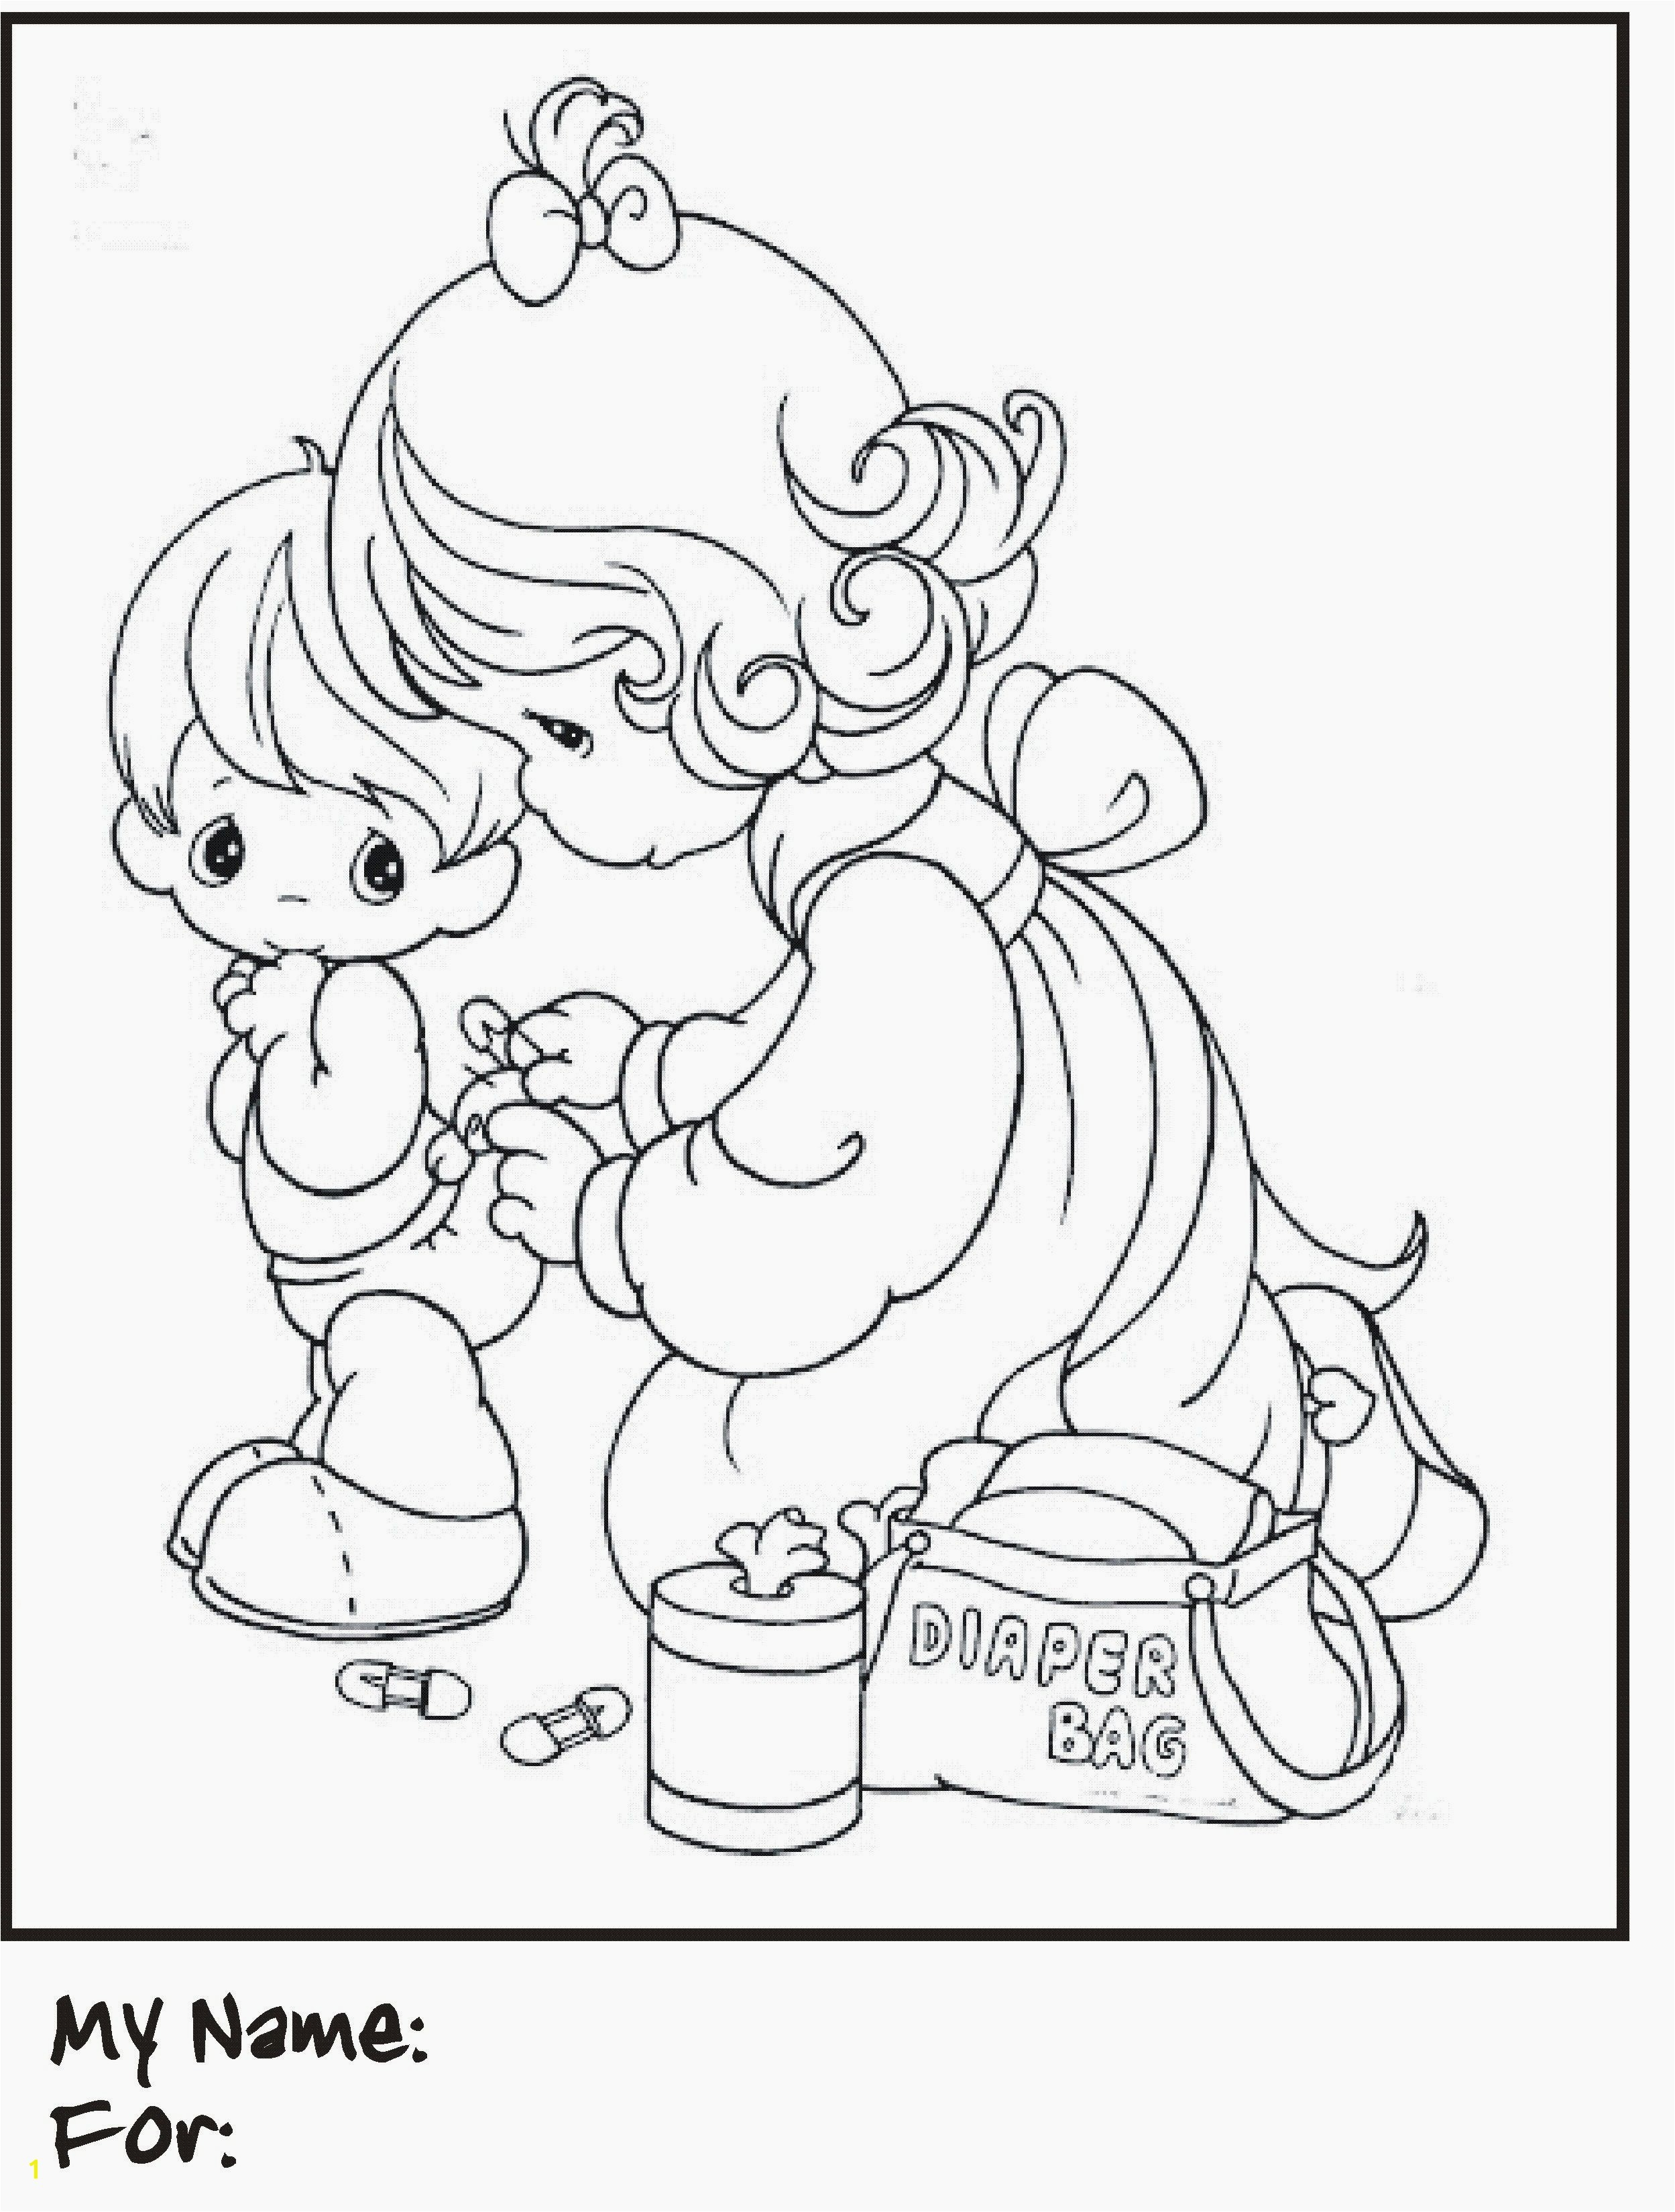 Free Printable Precious Moments Coloring Pages Awesome Drawings Precious Moments Colouring Pages Idaes De Design